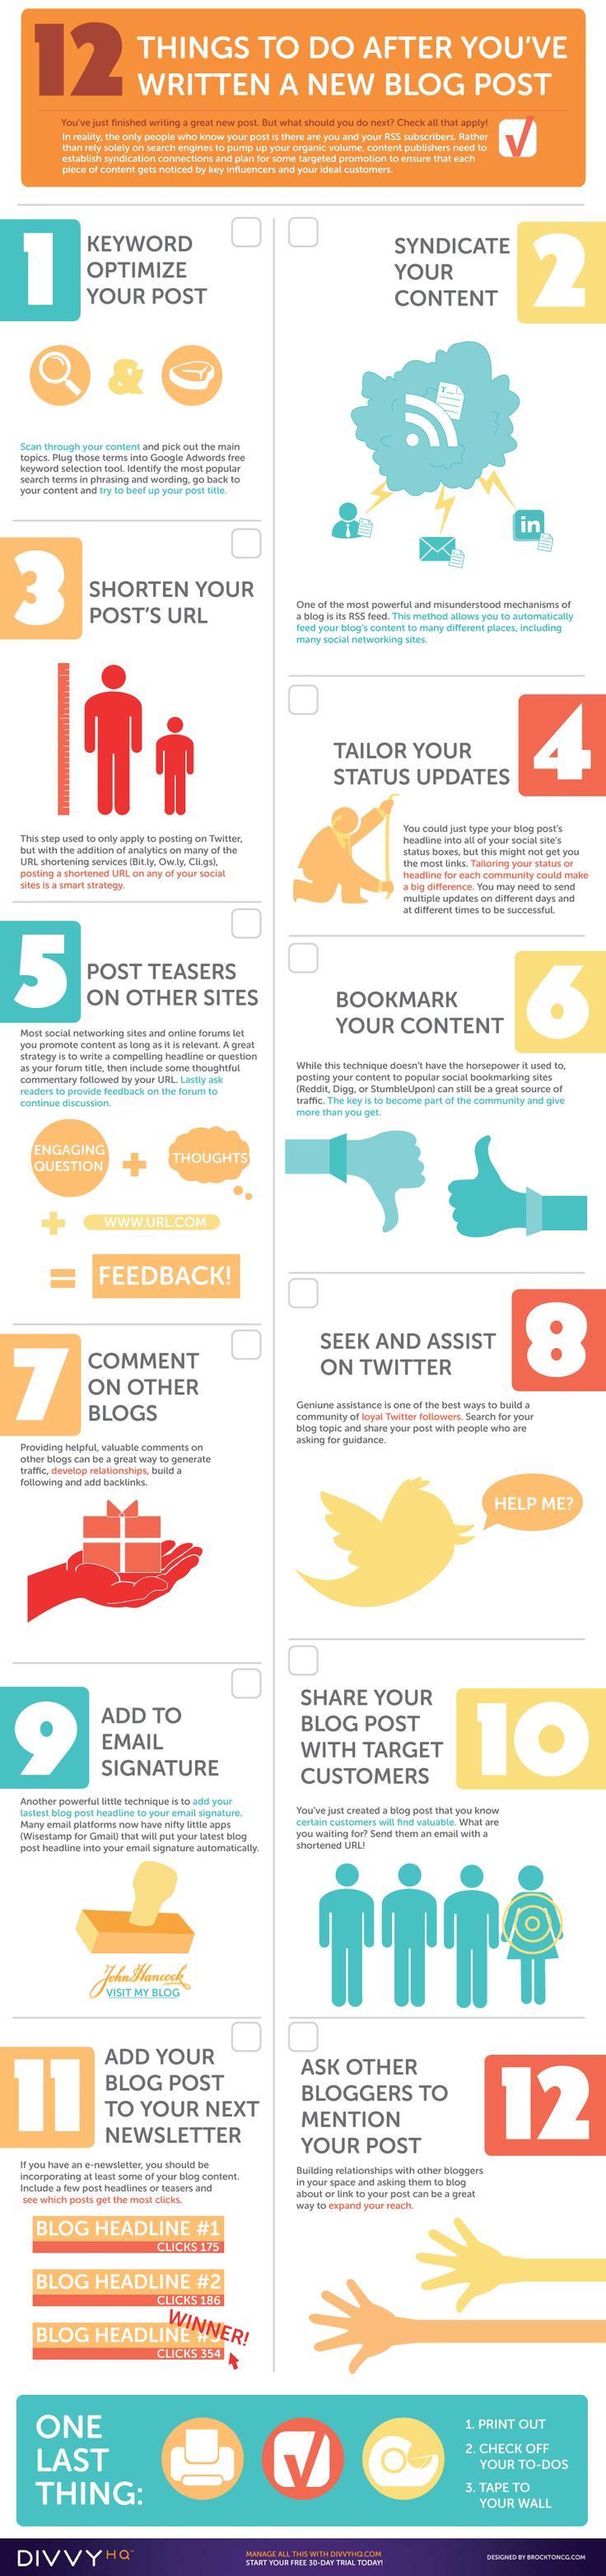 Like most of these - 12 things to do after your next blog post! Lots of great ideas here for maximizing your social media presence! #infographic #socialmedia